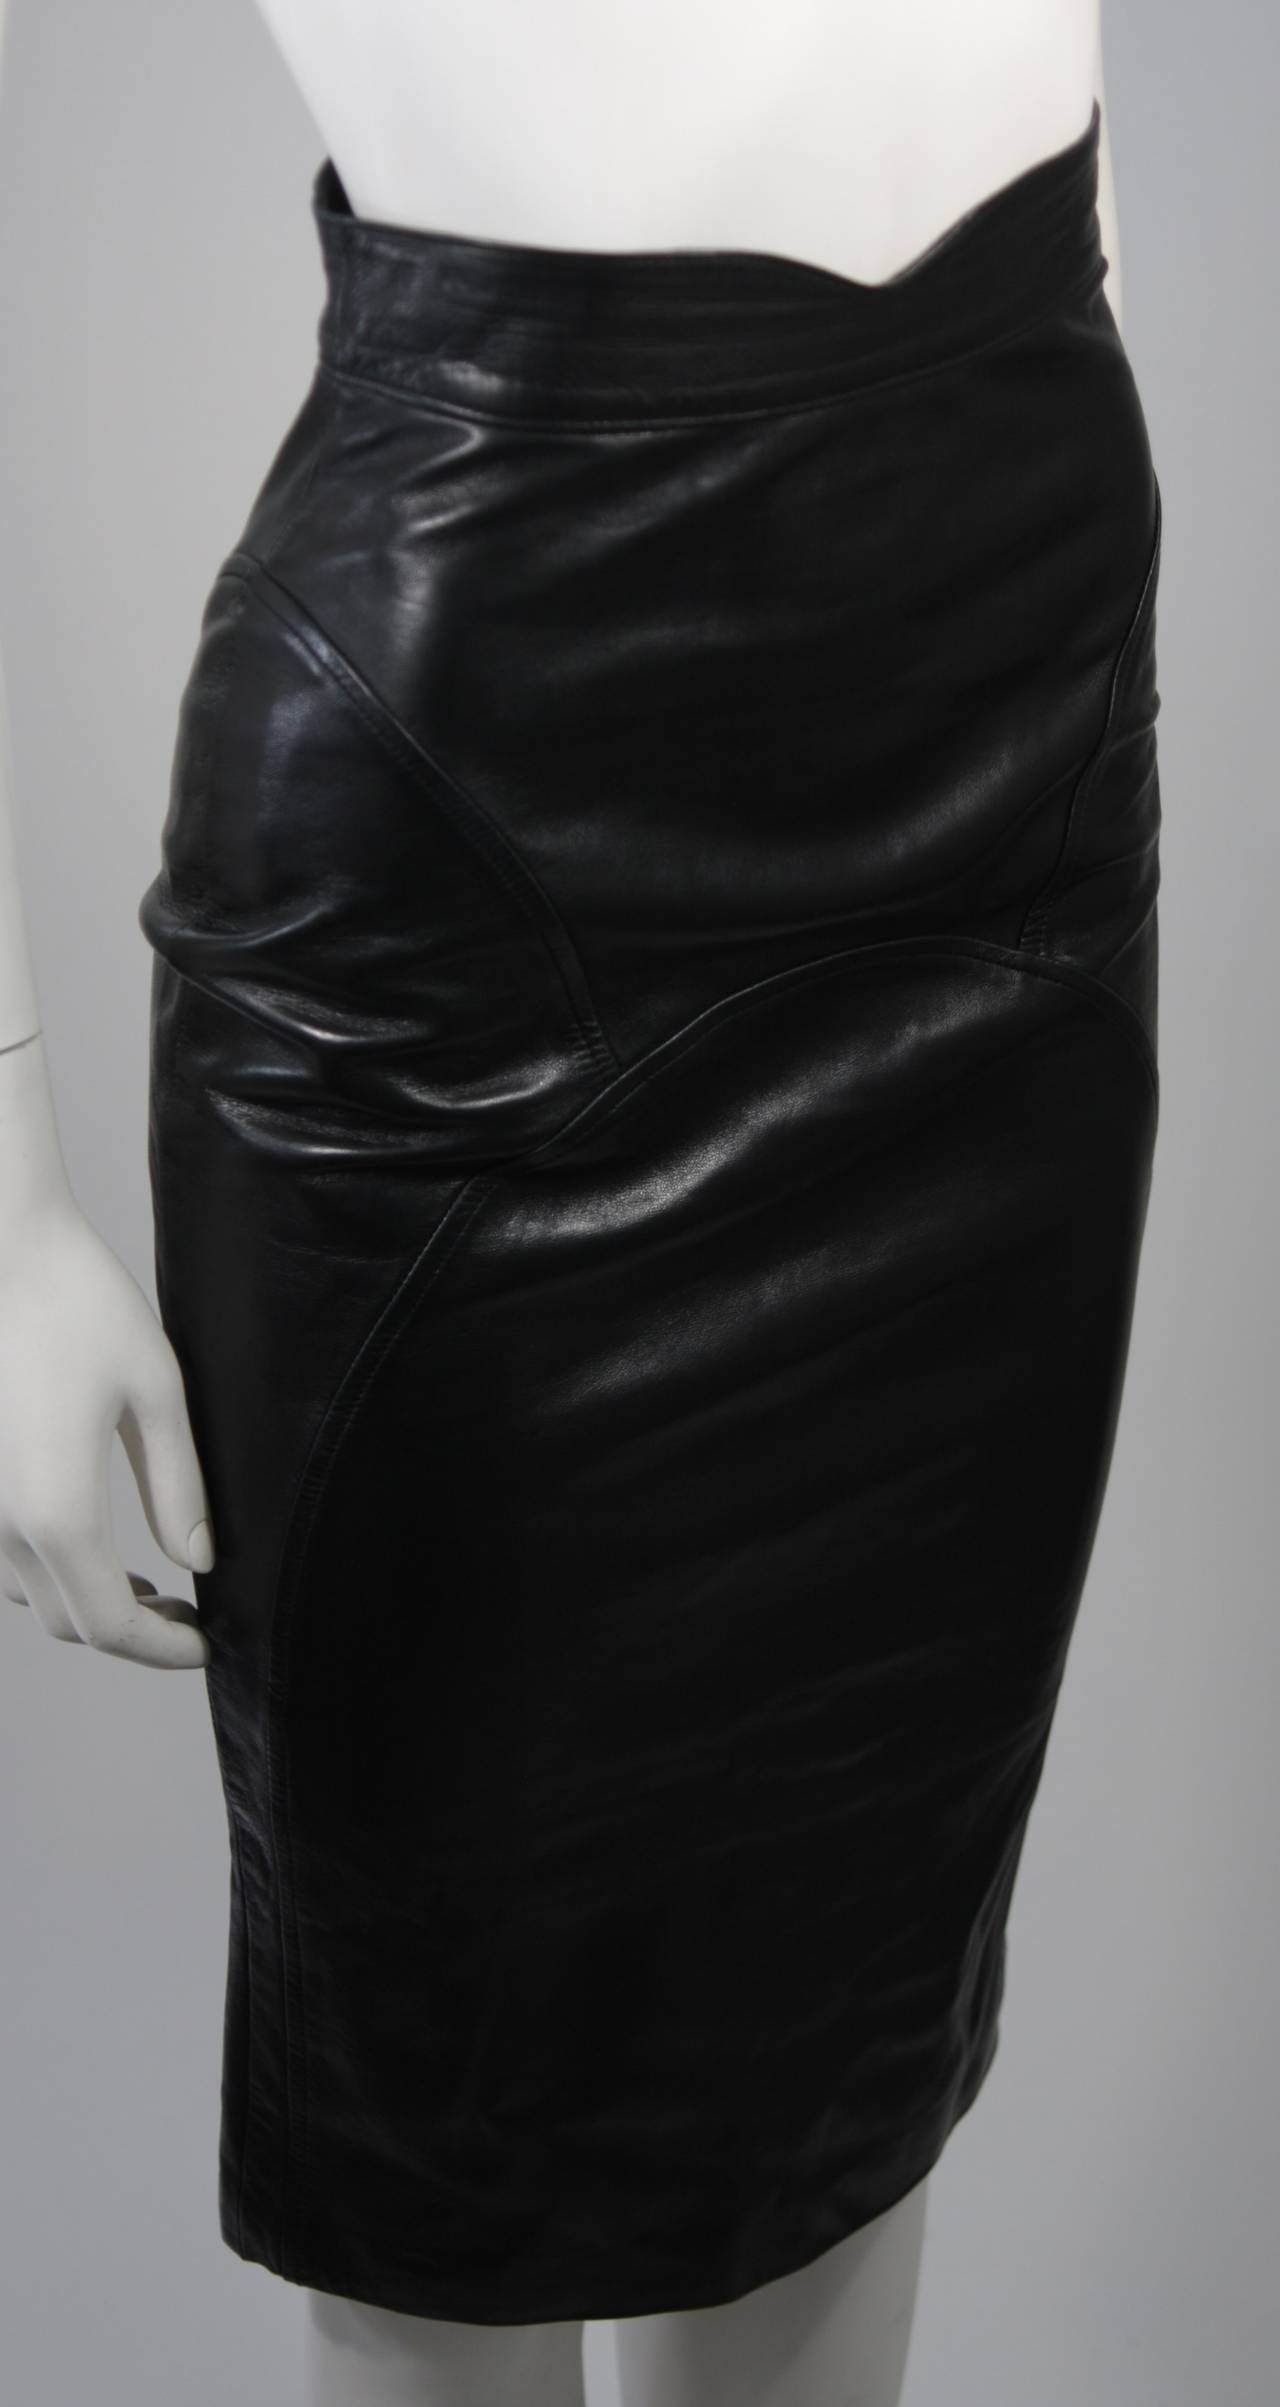 Jean Claude Jitrois Black Leather Skirt Size Extra Small 5